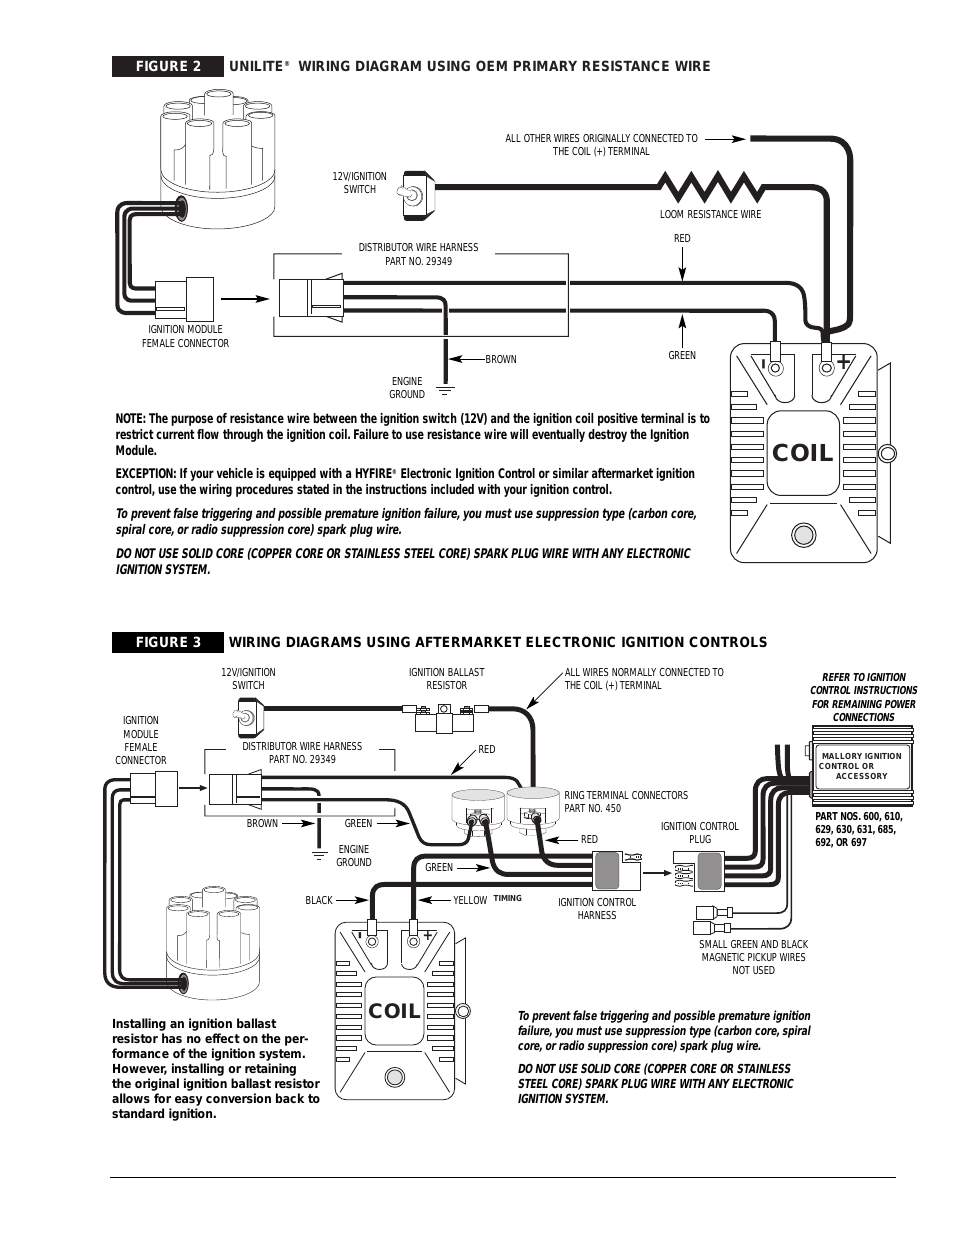 jacobs ignition system wiring diagram free download mallory ignition wiring diagram | free wiring diagram #6